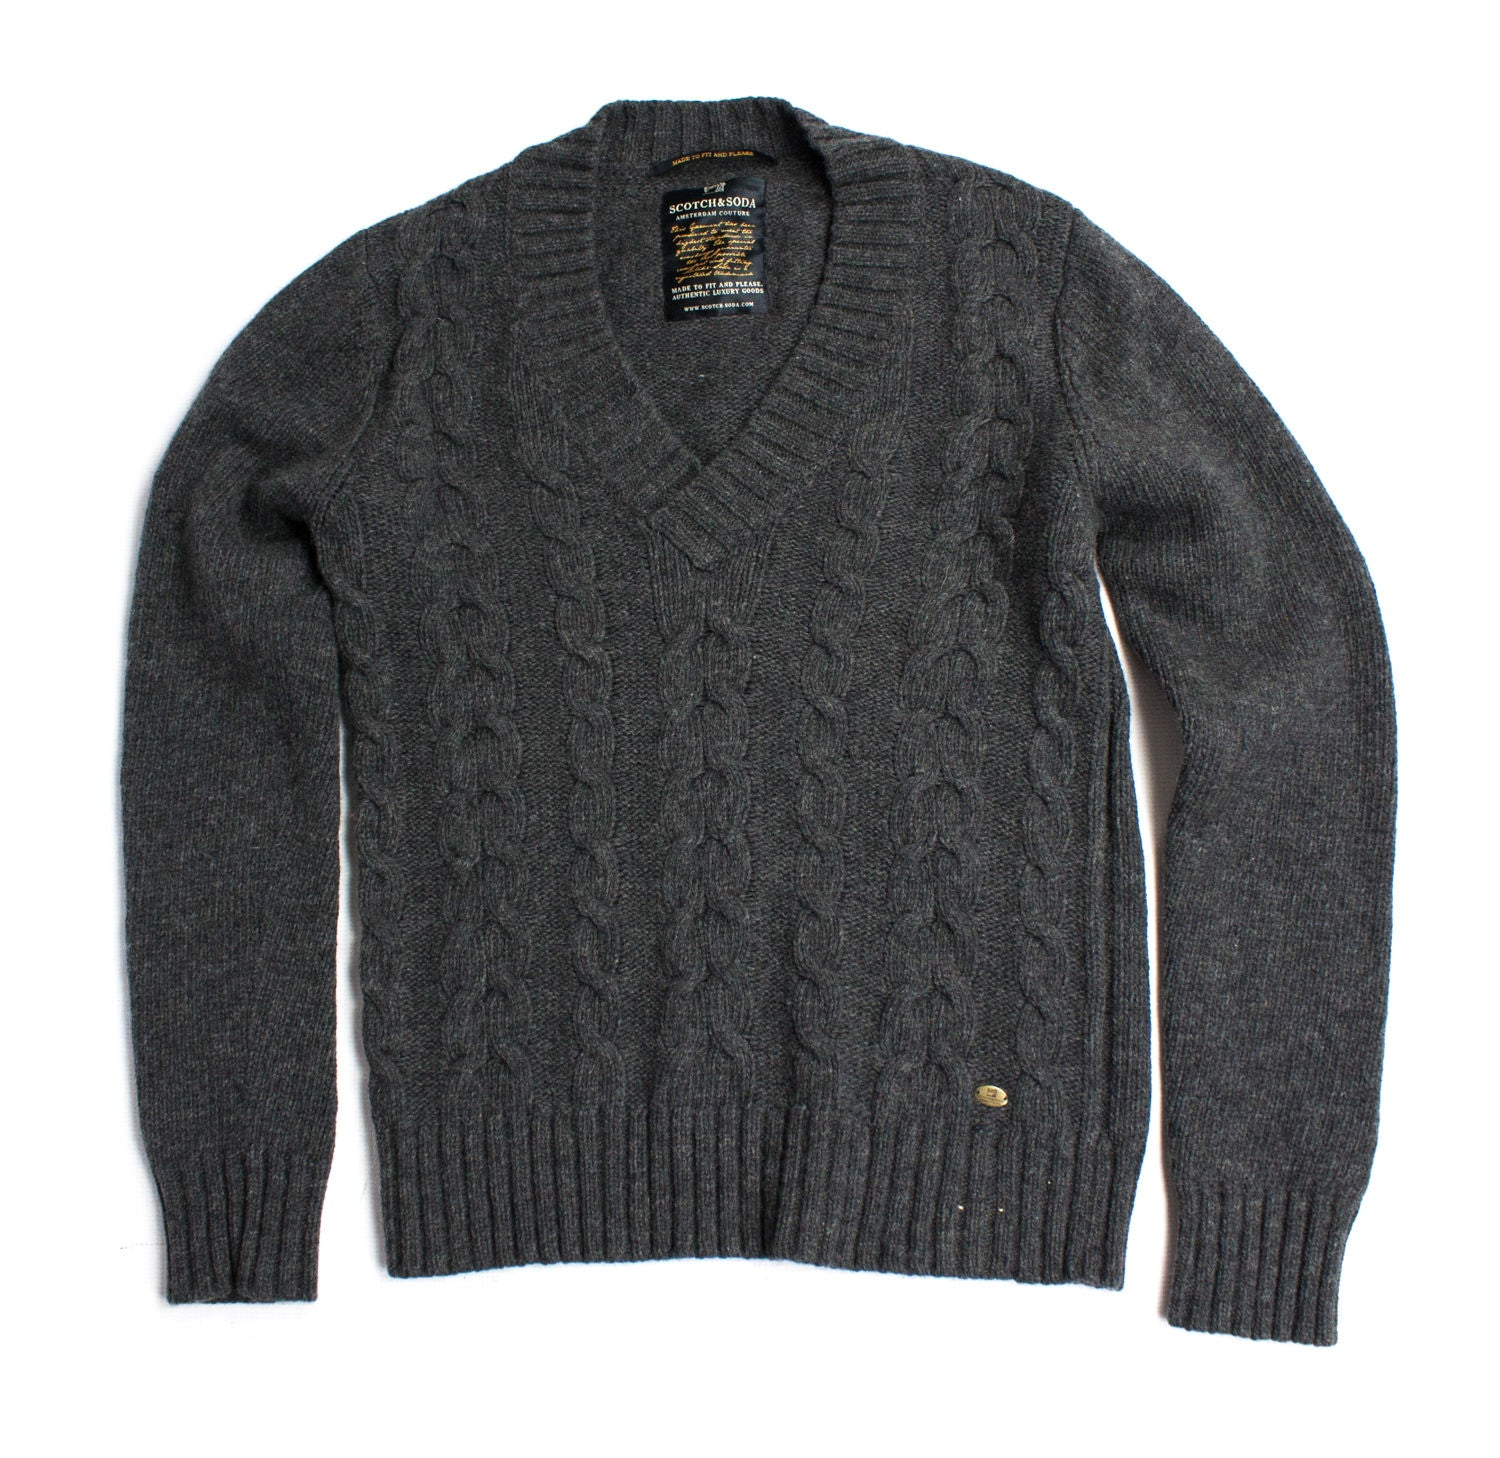 SCOTCH & SODA Men's Lambswool Jumper Sweater, L - secondfirst